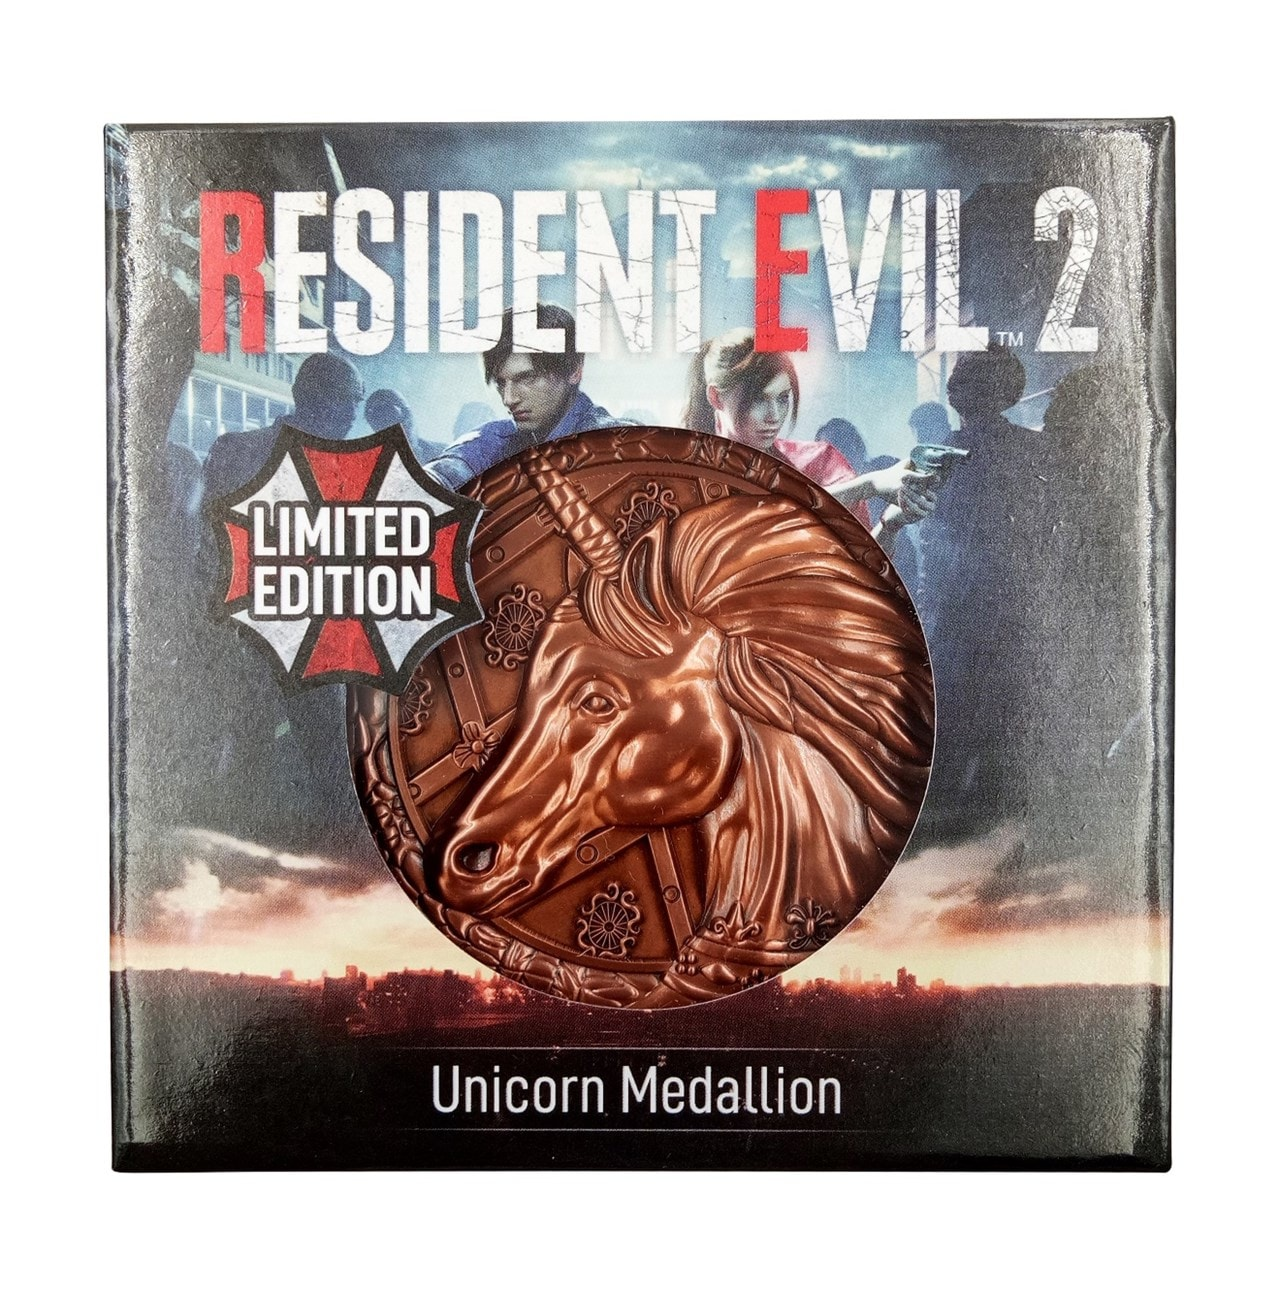 Resident Evil Replica: Unicorn Medallion (online only) - 1